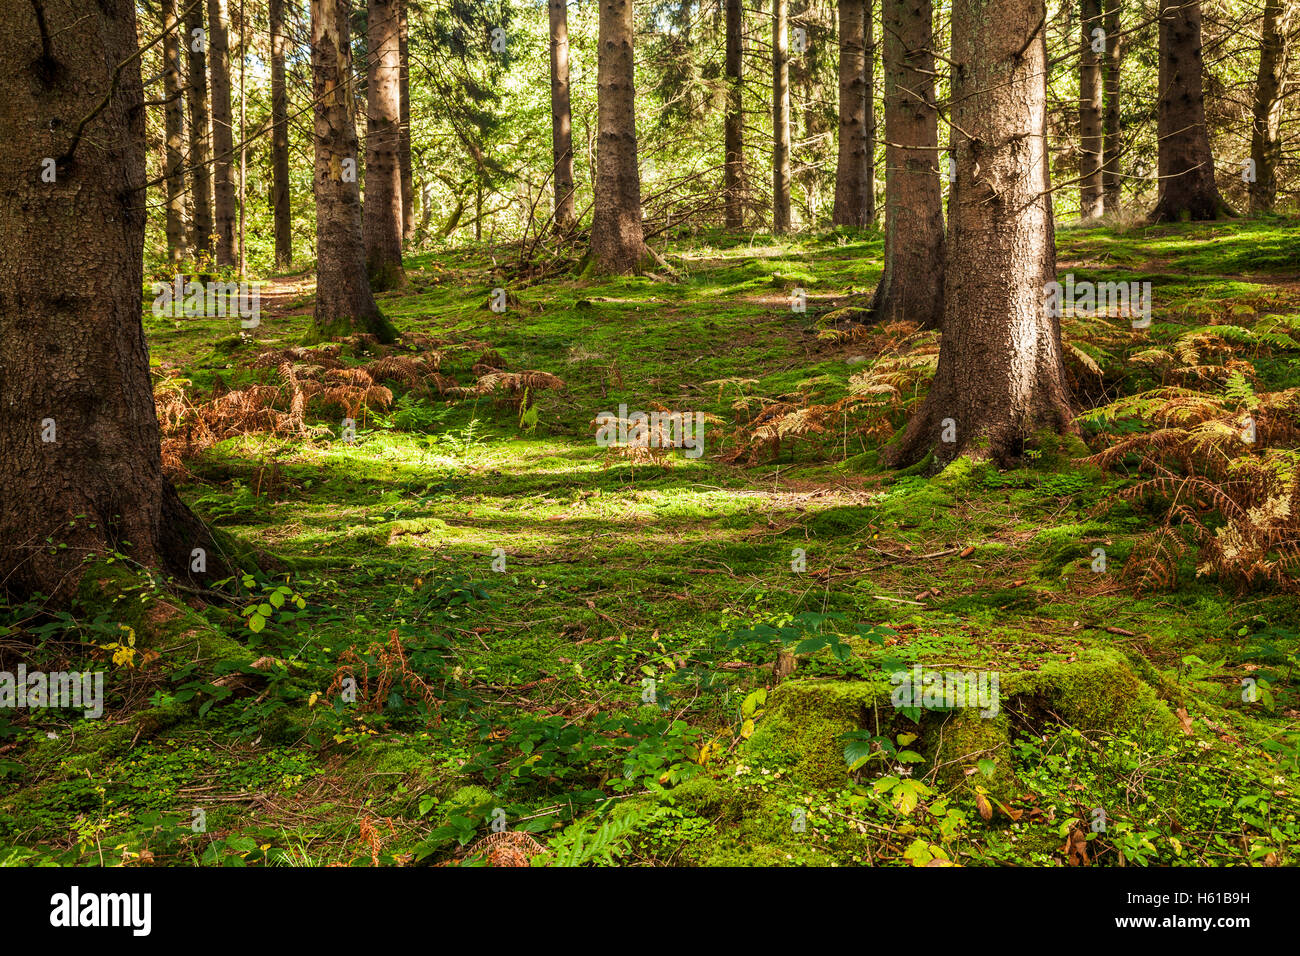 Dappled sunlight through coniferous trees in the Forest of Dean, Gloucestershire. - Stock Image